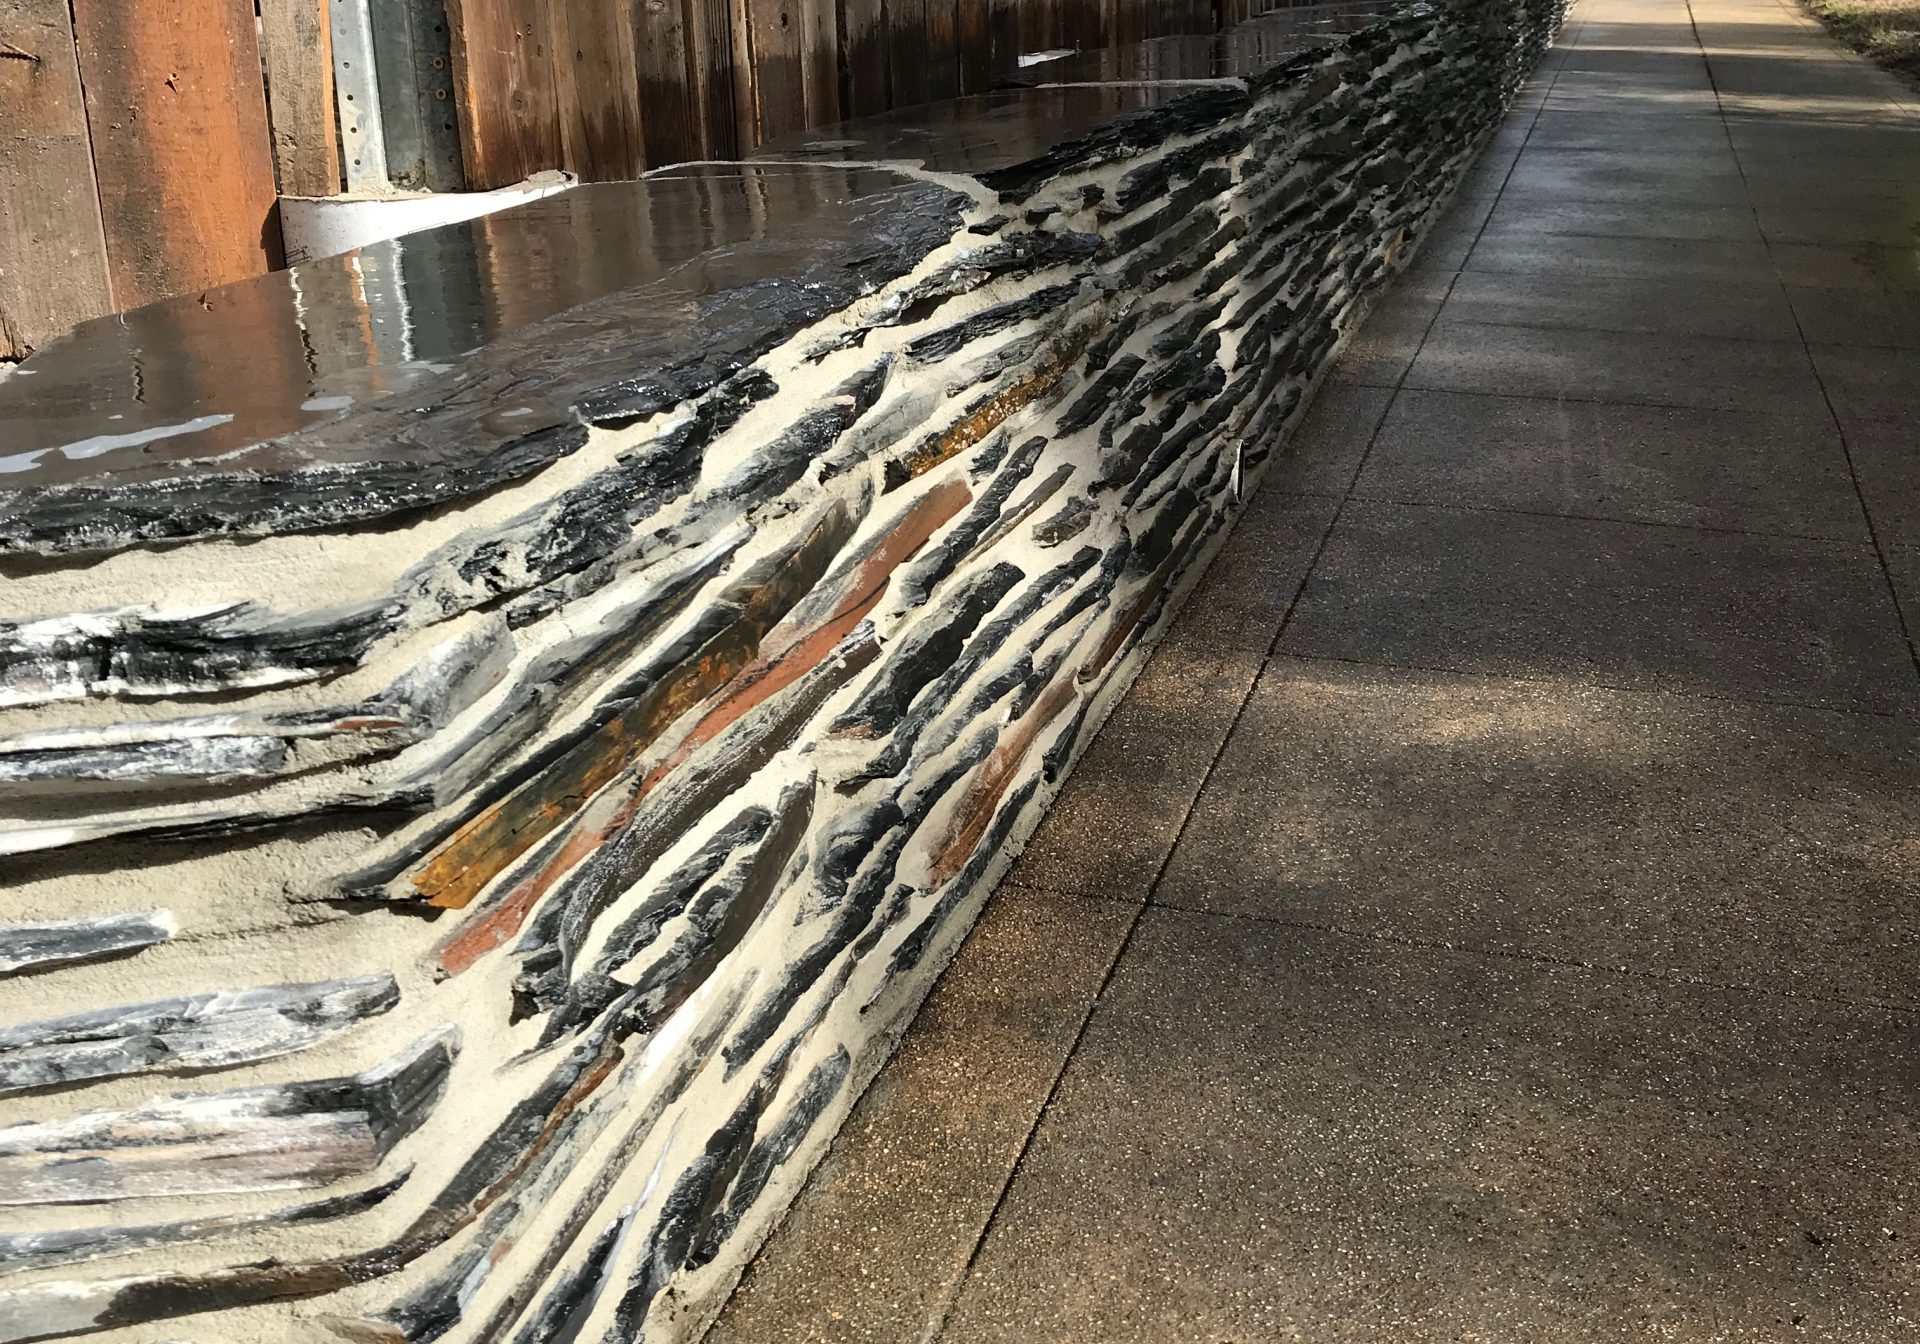 this image shows escondido stone veneer